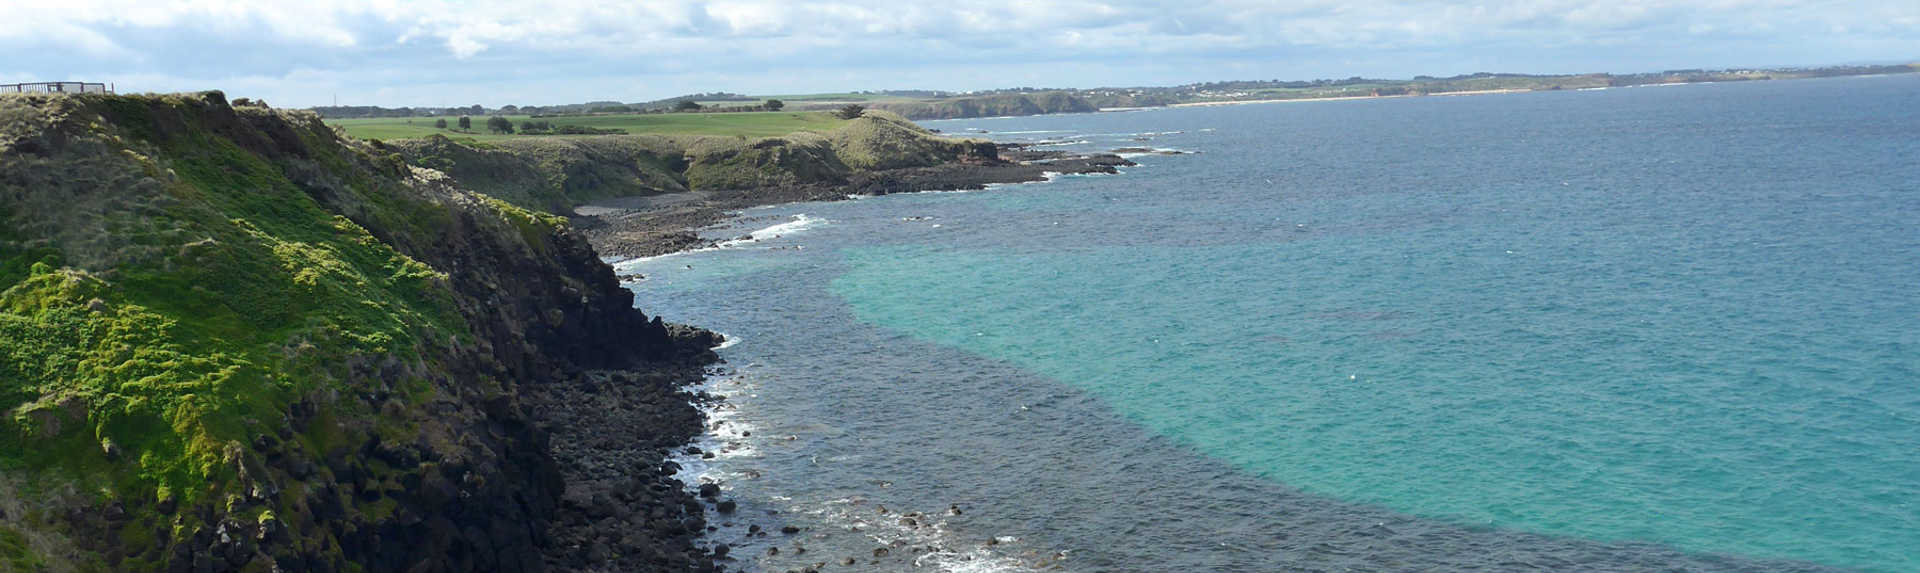 How many days do you need on Phillip Island?